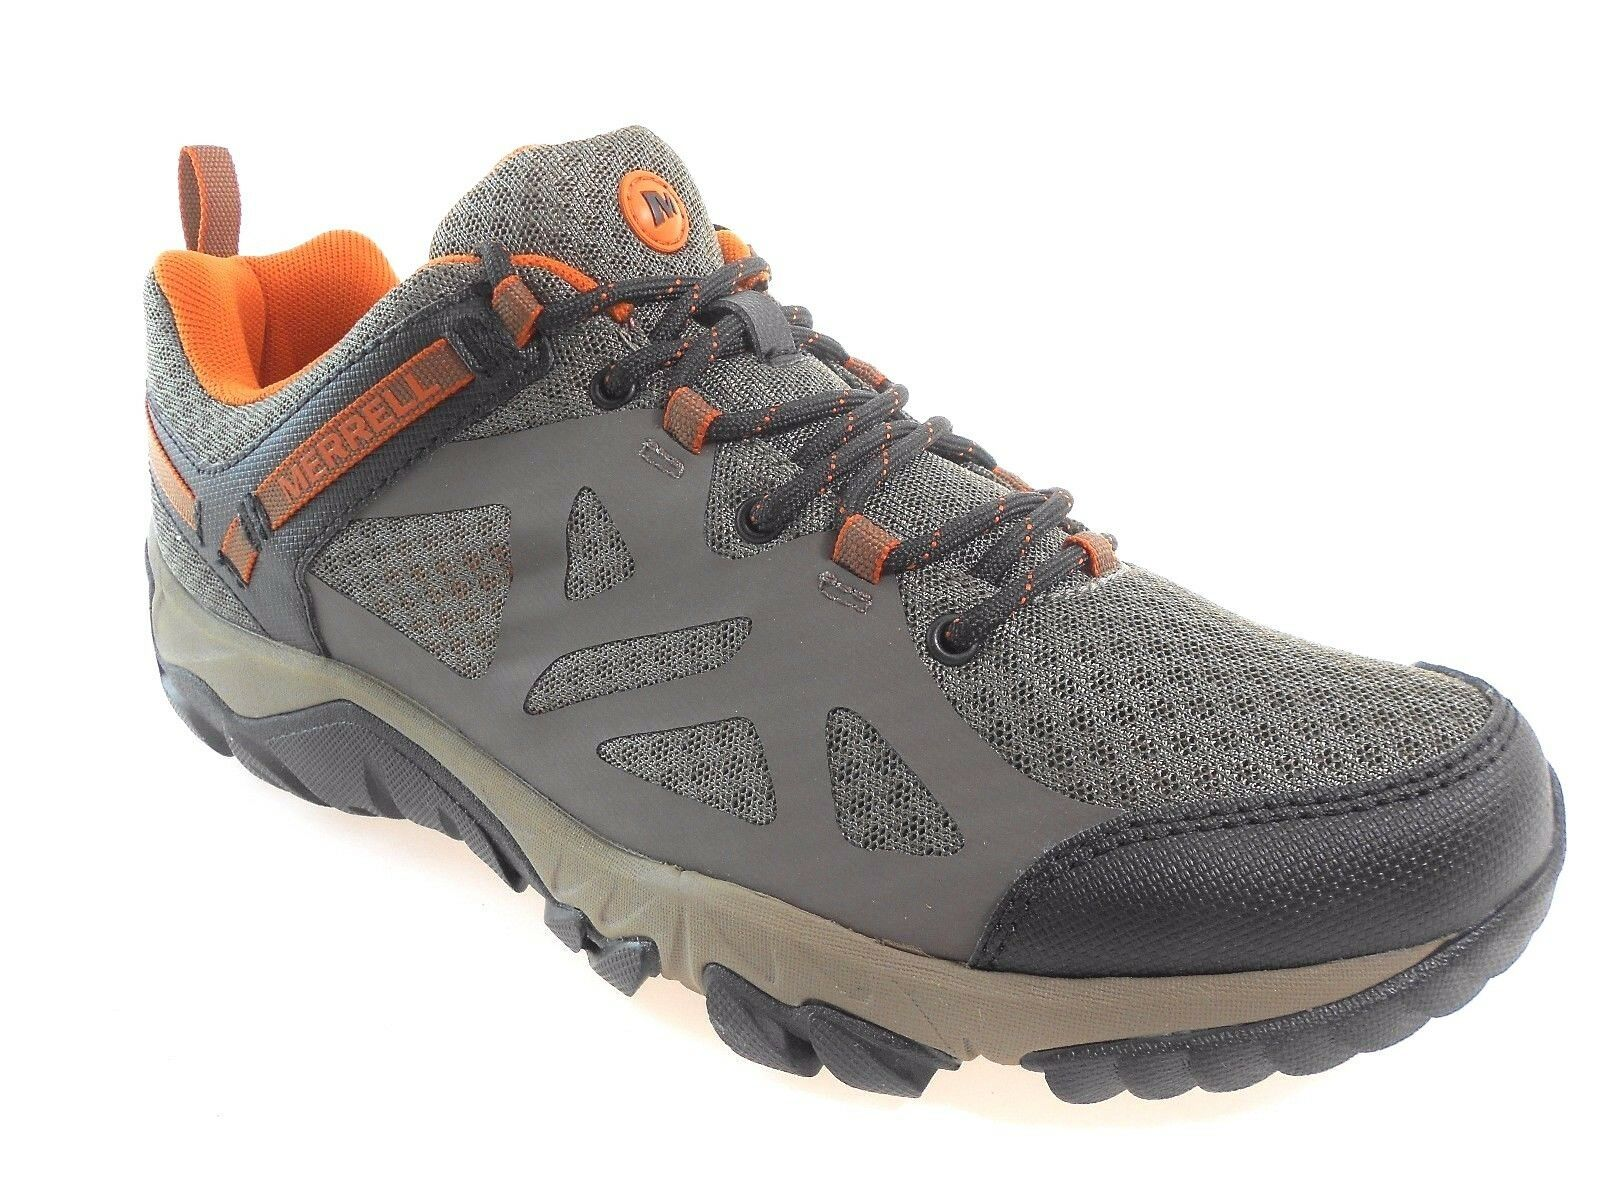 MERRELL OUTRIGHT EDGE MEN'S BOULDER OUTDOOR SHOES, J342282C